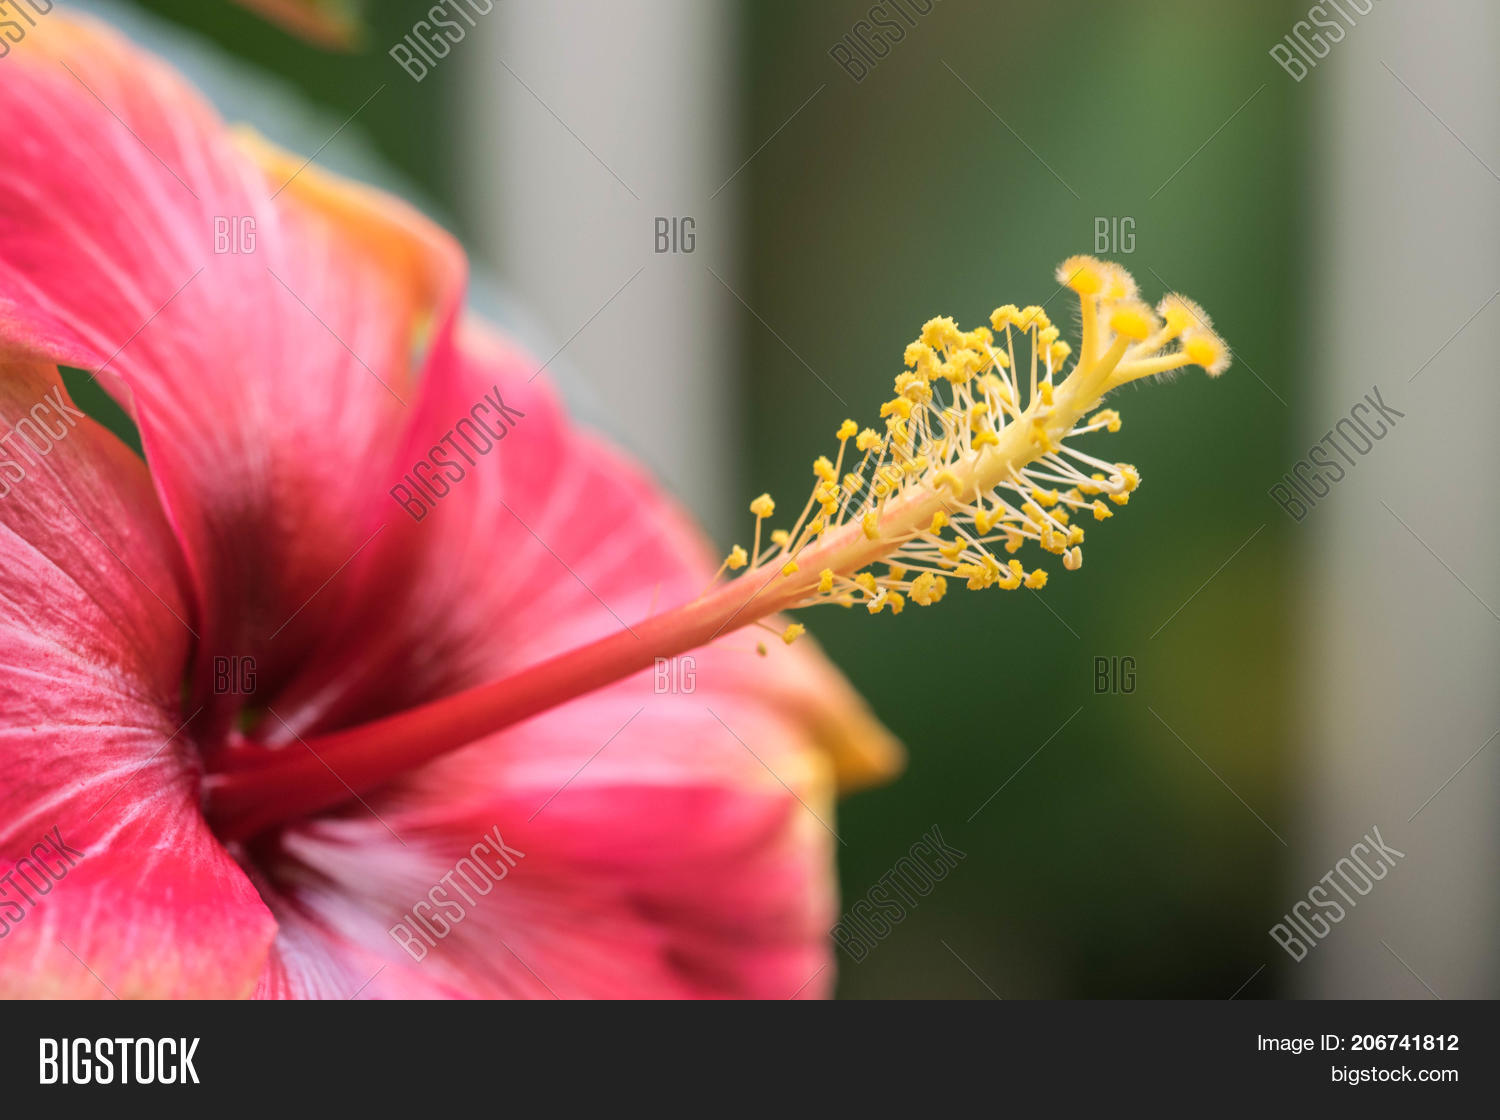 Extreme Close Image Photo Free Trial Bigstock